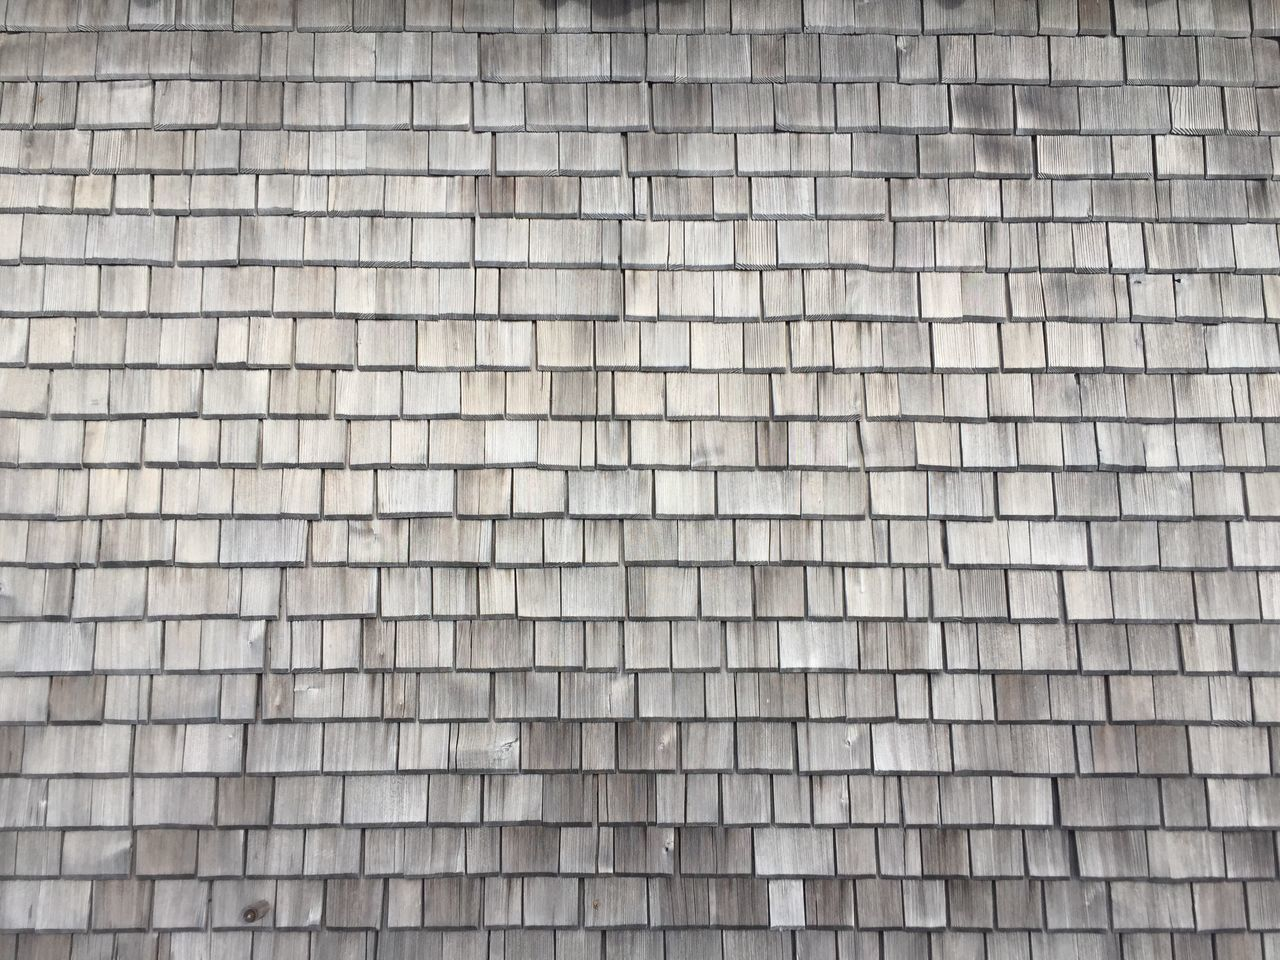 Shingles Clapboard House Backgrounds Pattern Close-up Allgäu Architecture Traditional German Texture Wood Alpine